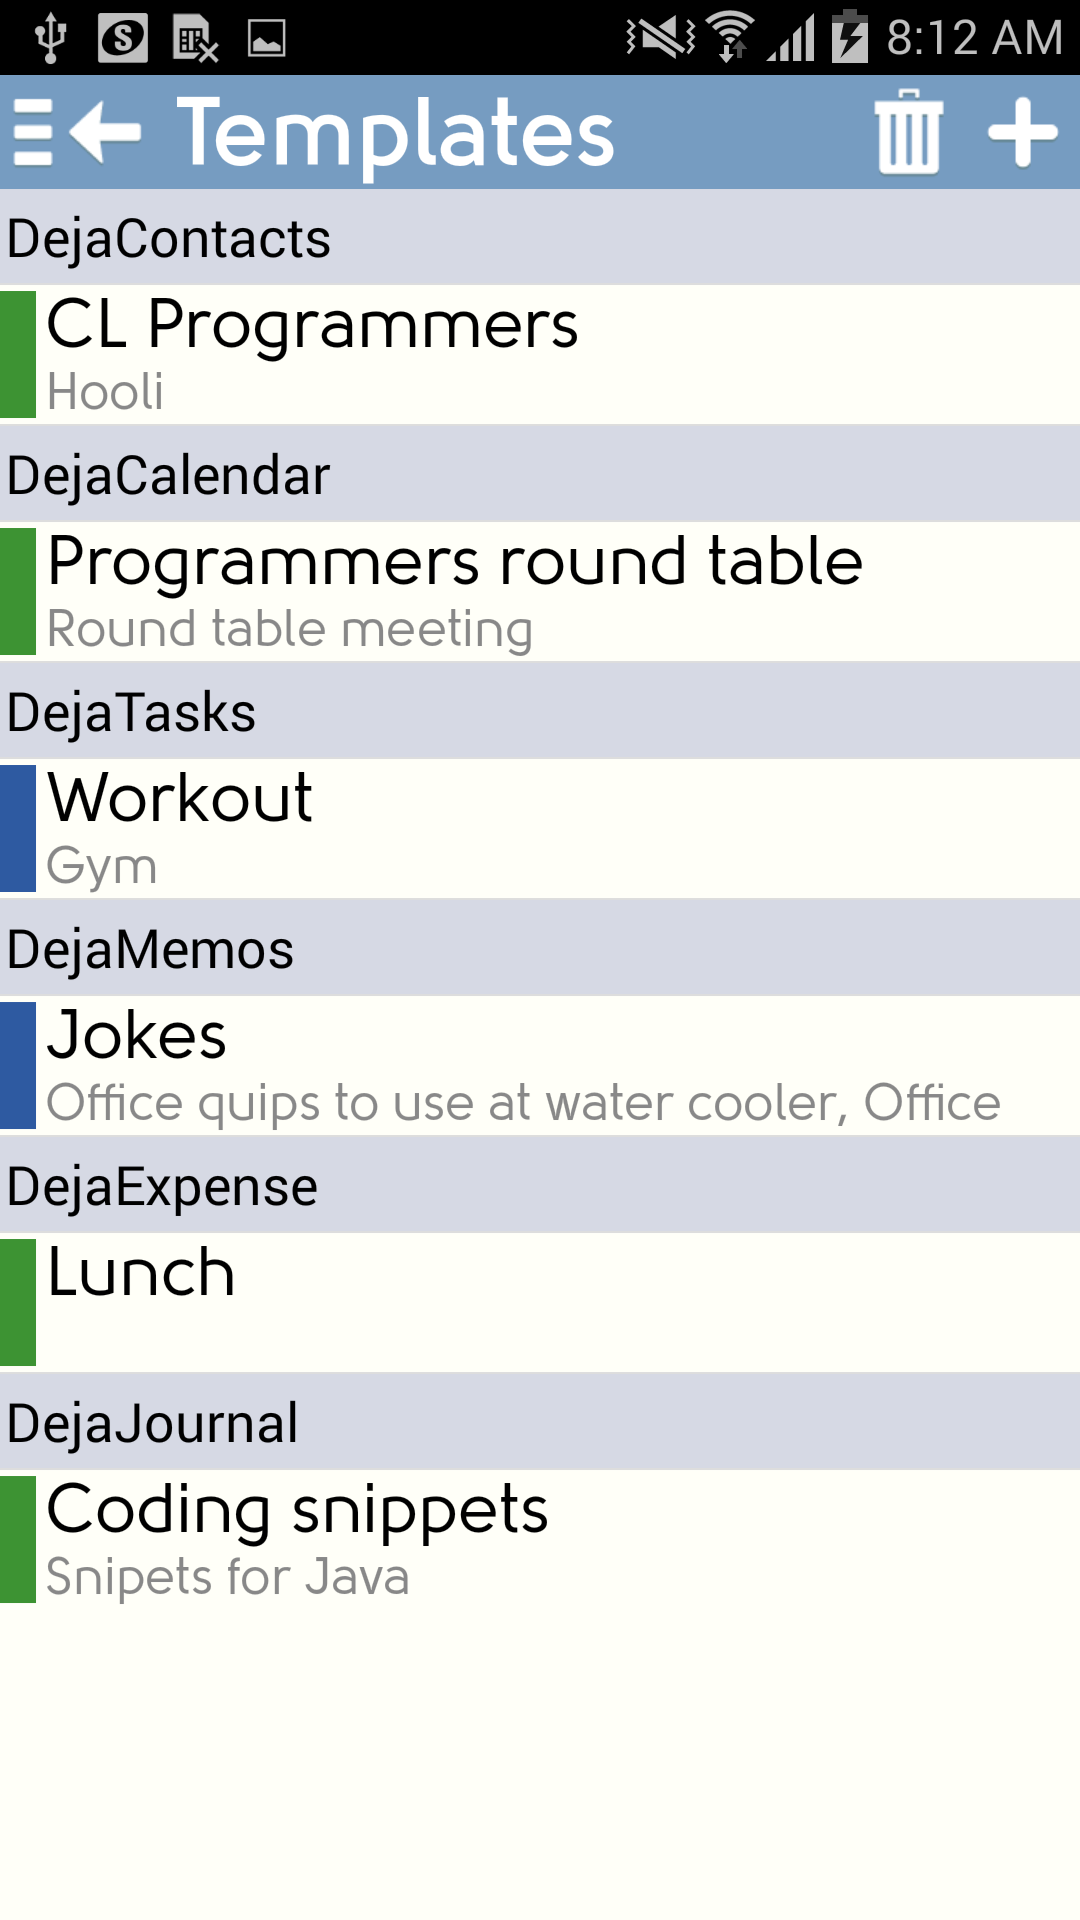 dejaoffice classroom android templates to access templates select templates from the dejaoffice home screen this will take you to the template list view